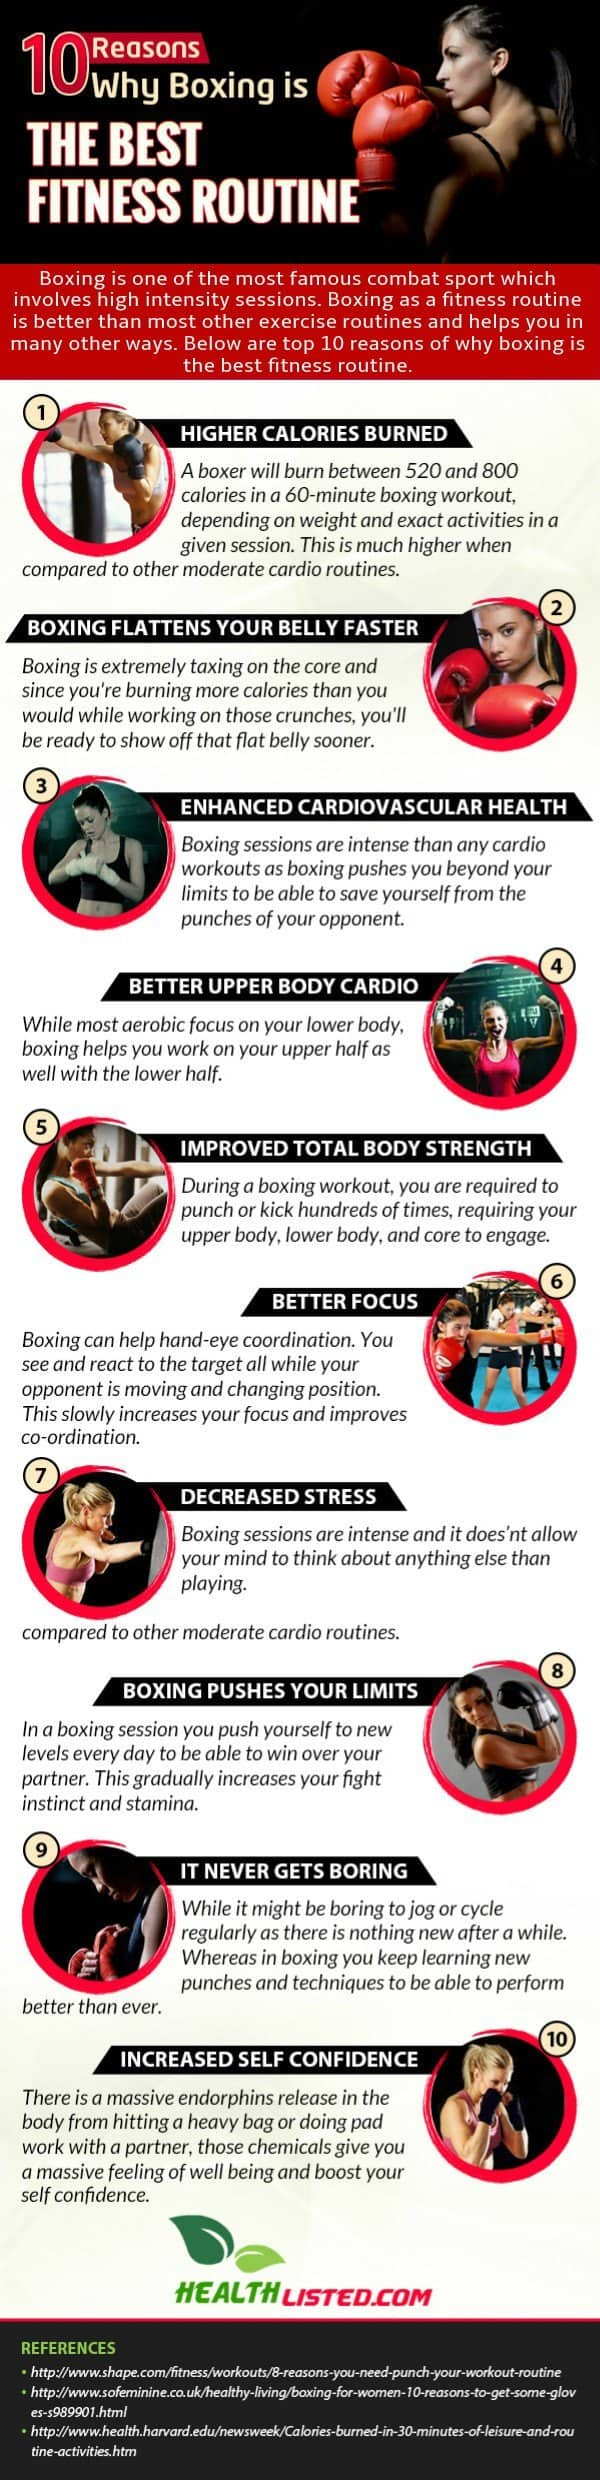 Why Boxing is the Best Fitness Routine